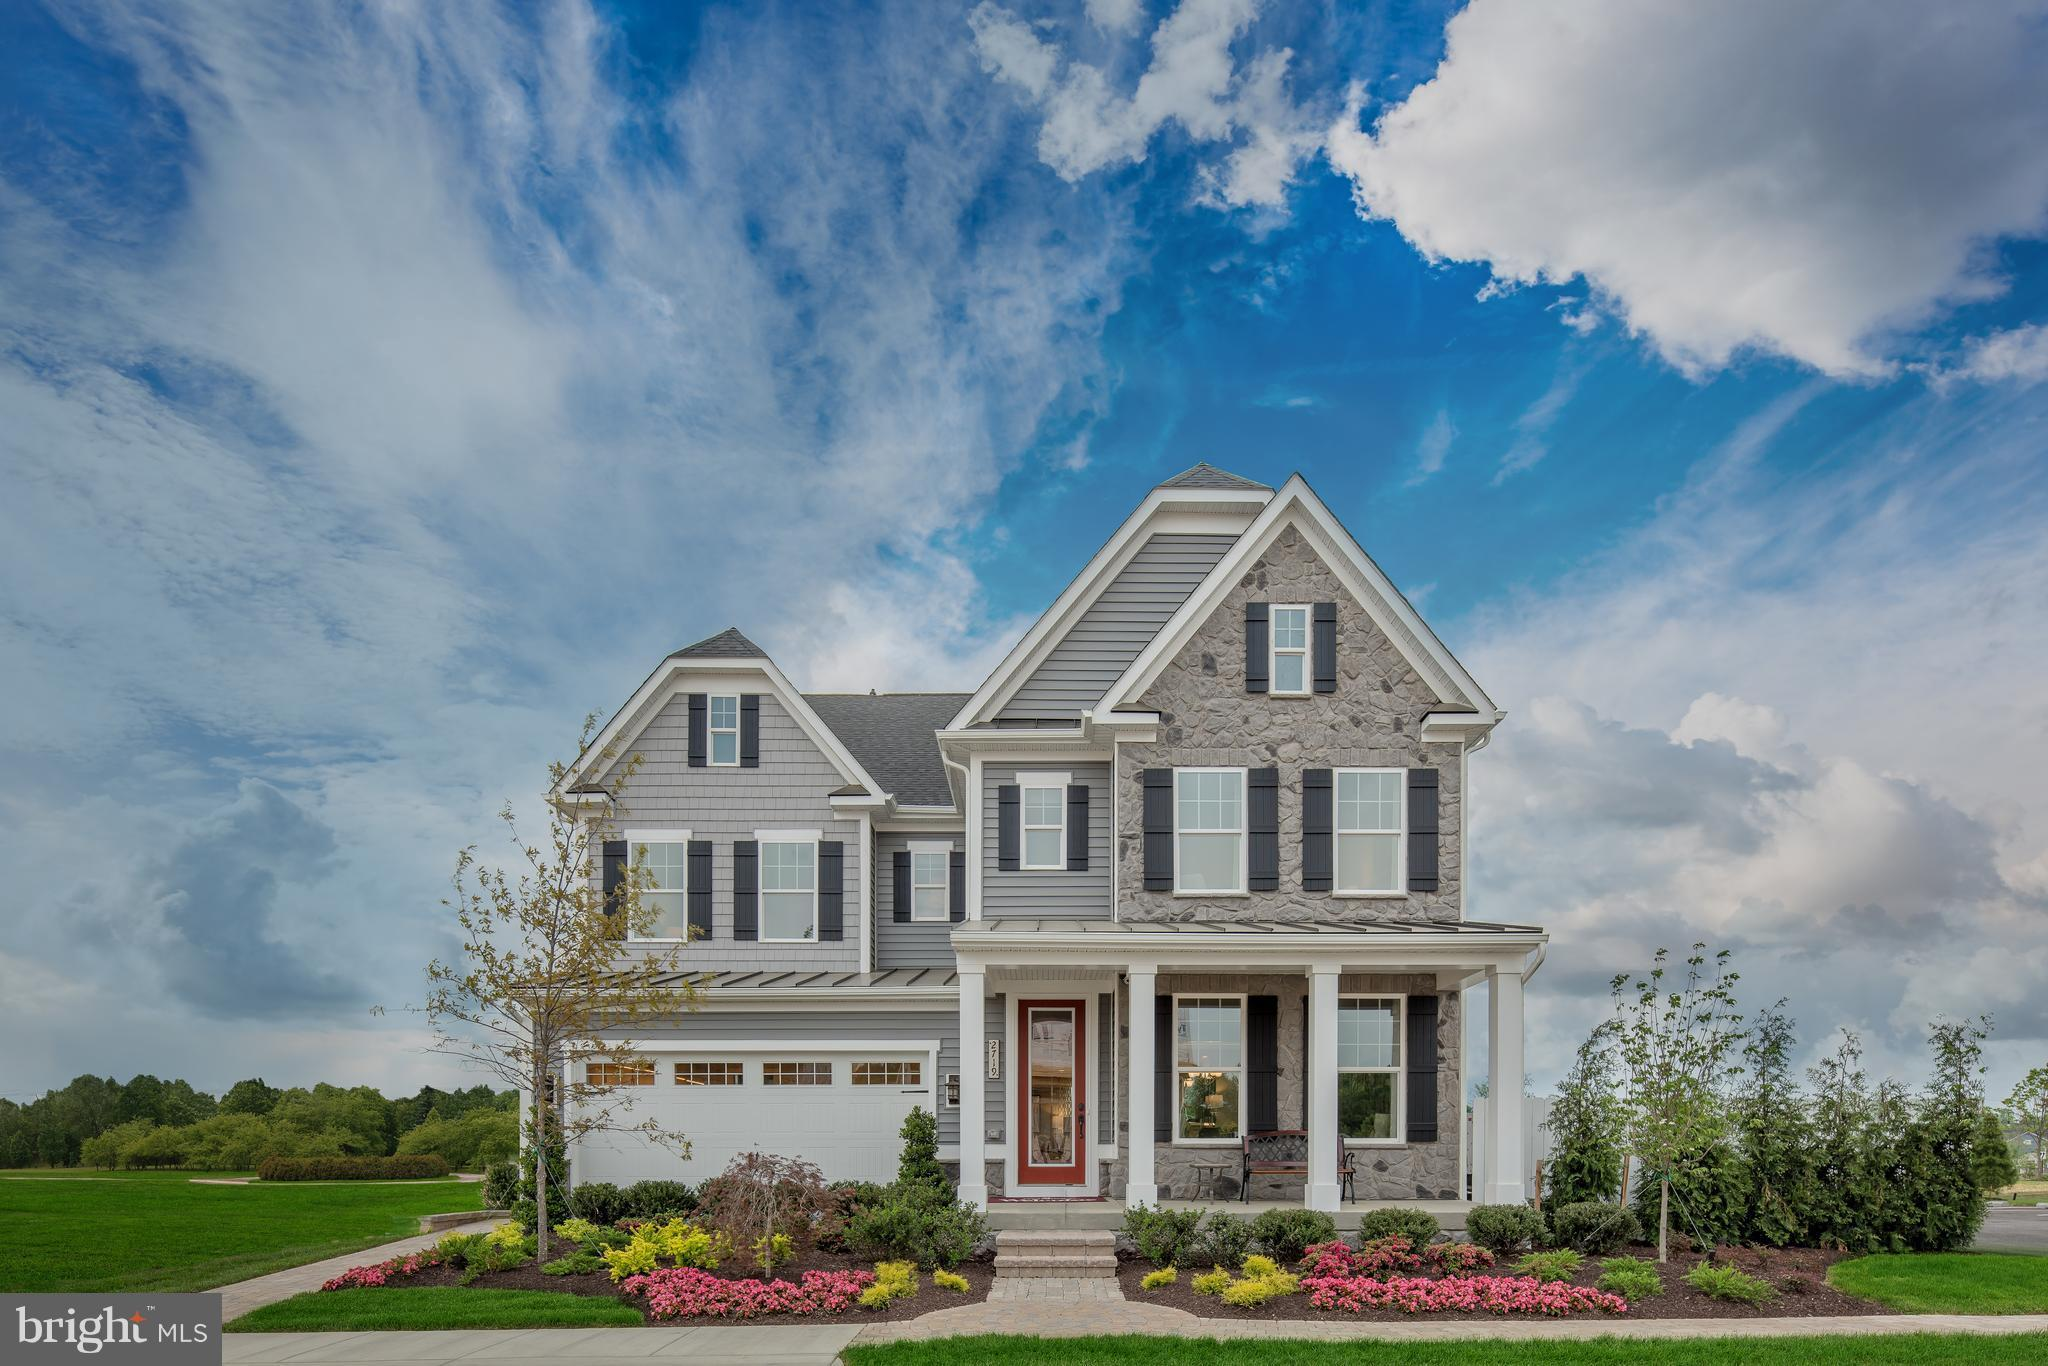 2667 ORCHARD ORIOLE WAY, ODENTON, MD 21113